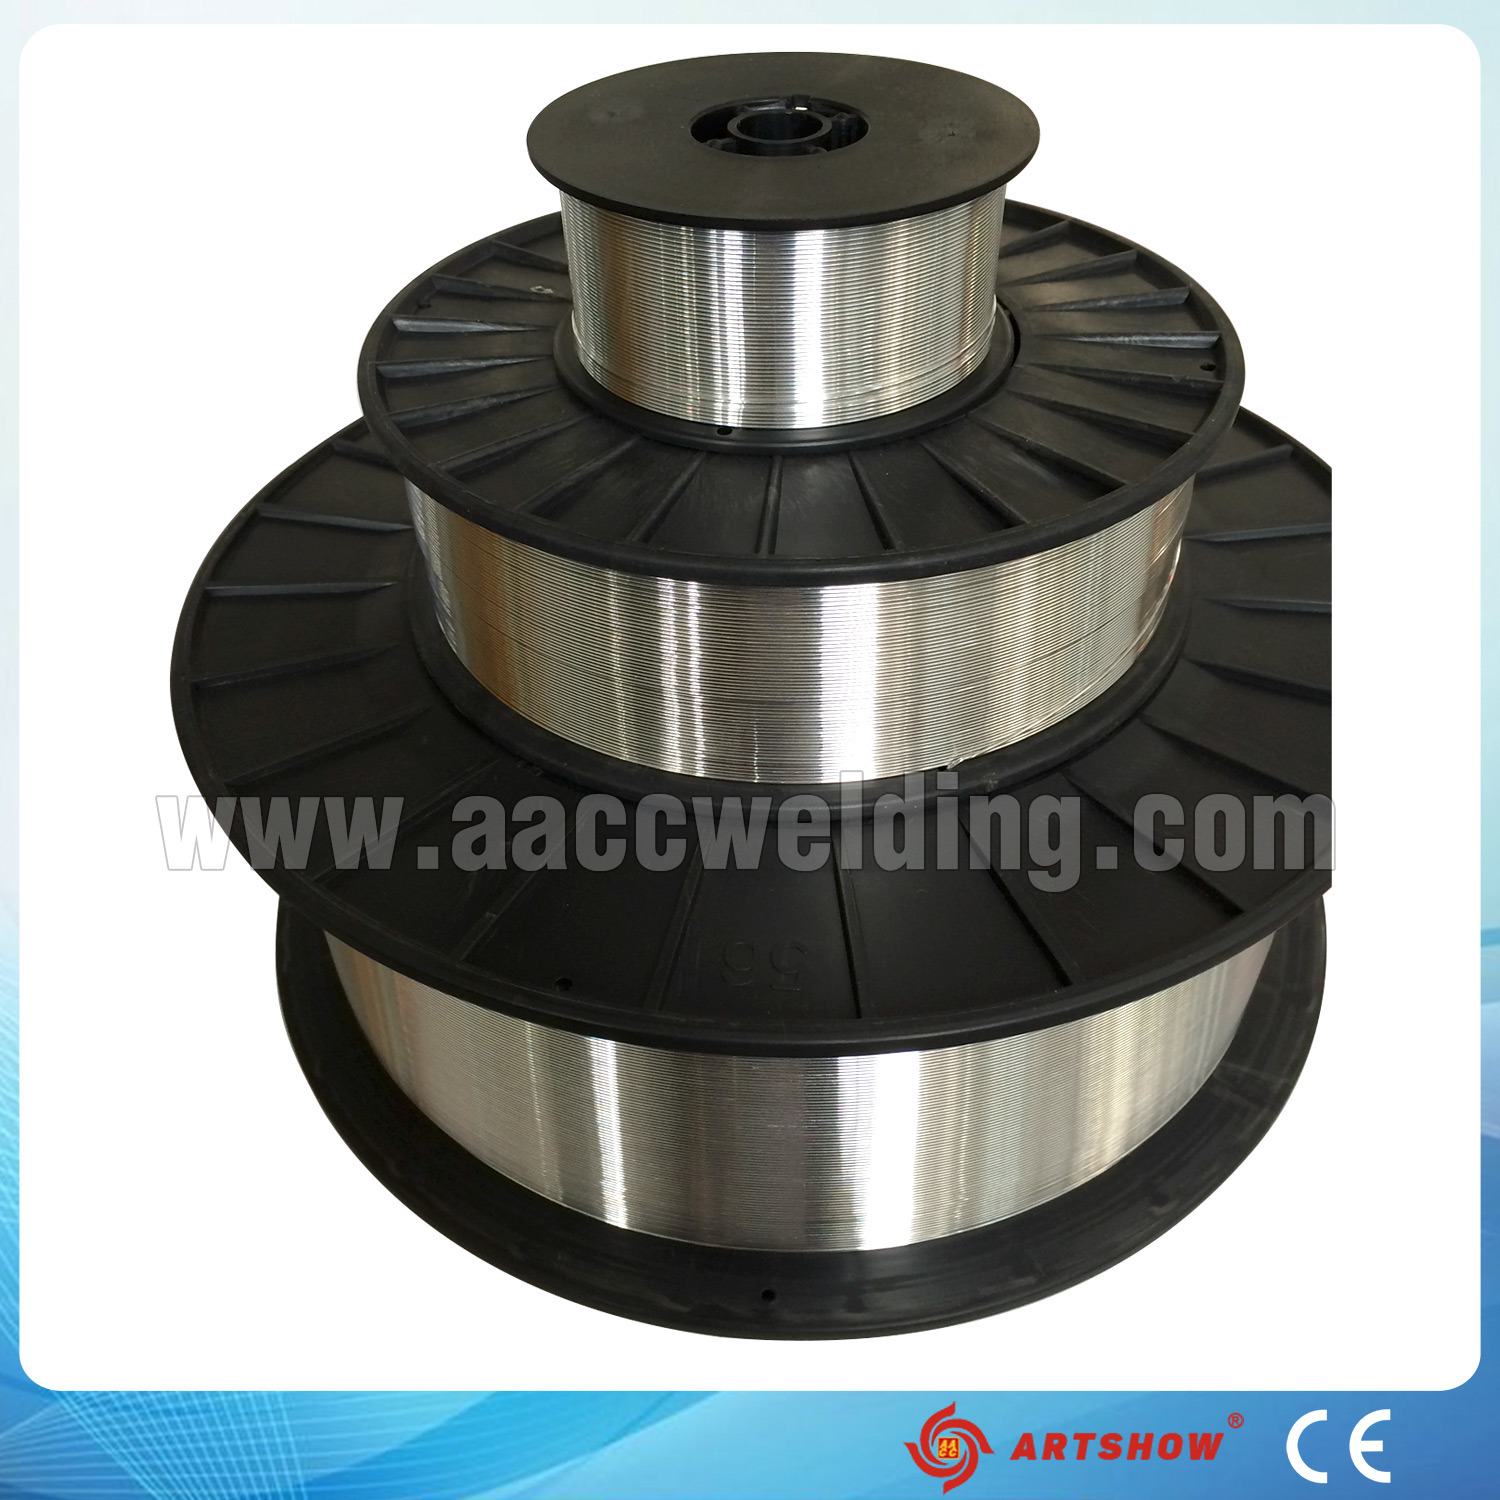 China E71t Mild Steel Flux Cored MIG Welding Wire - China Flux Core ...